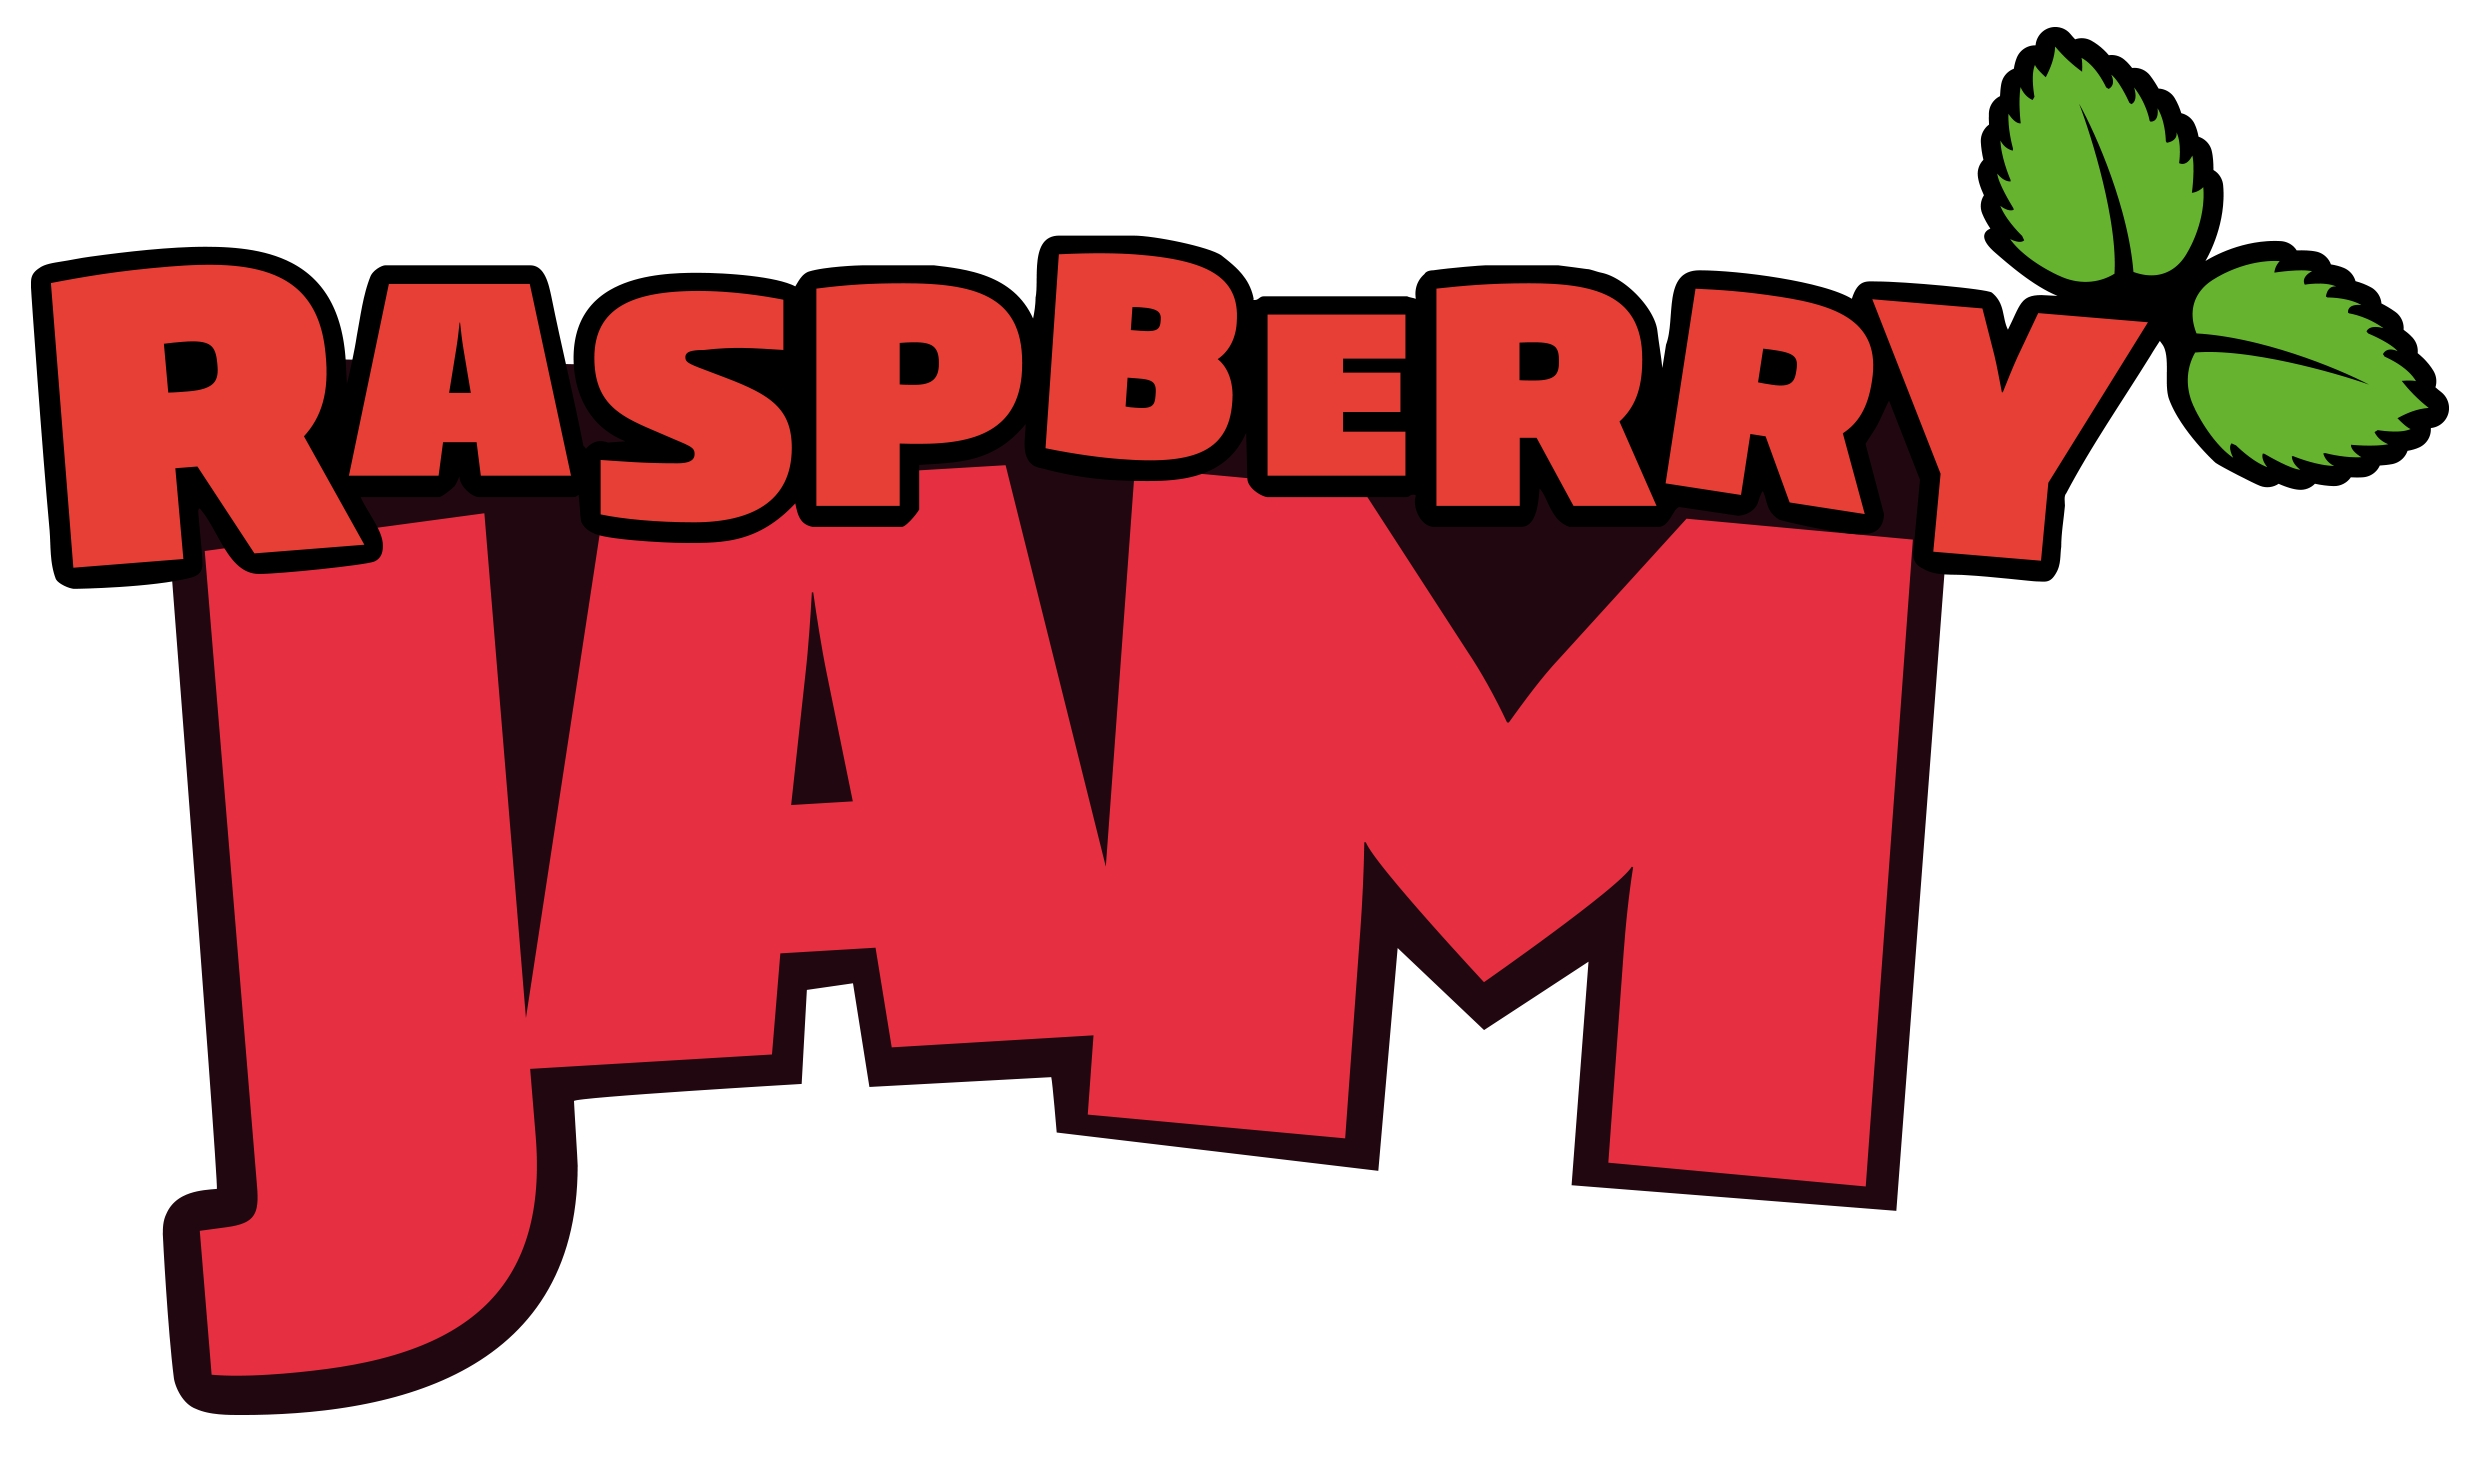 Raspberry pi clipart clipart library library Raspberry jam clipart - ClipartFest clipart library library